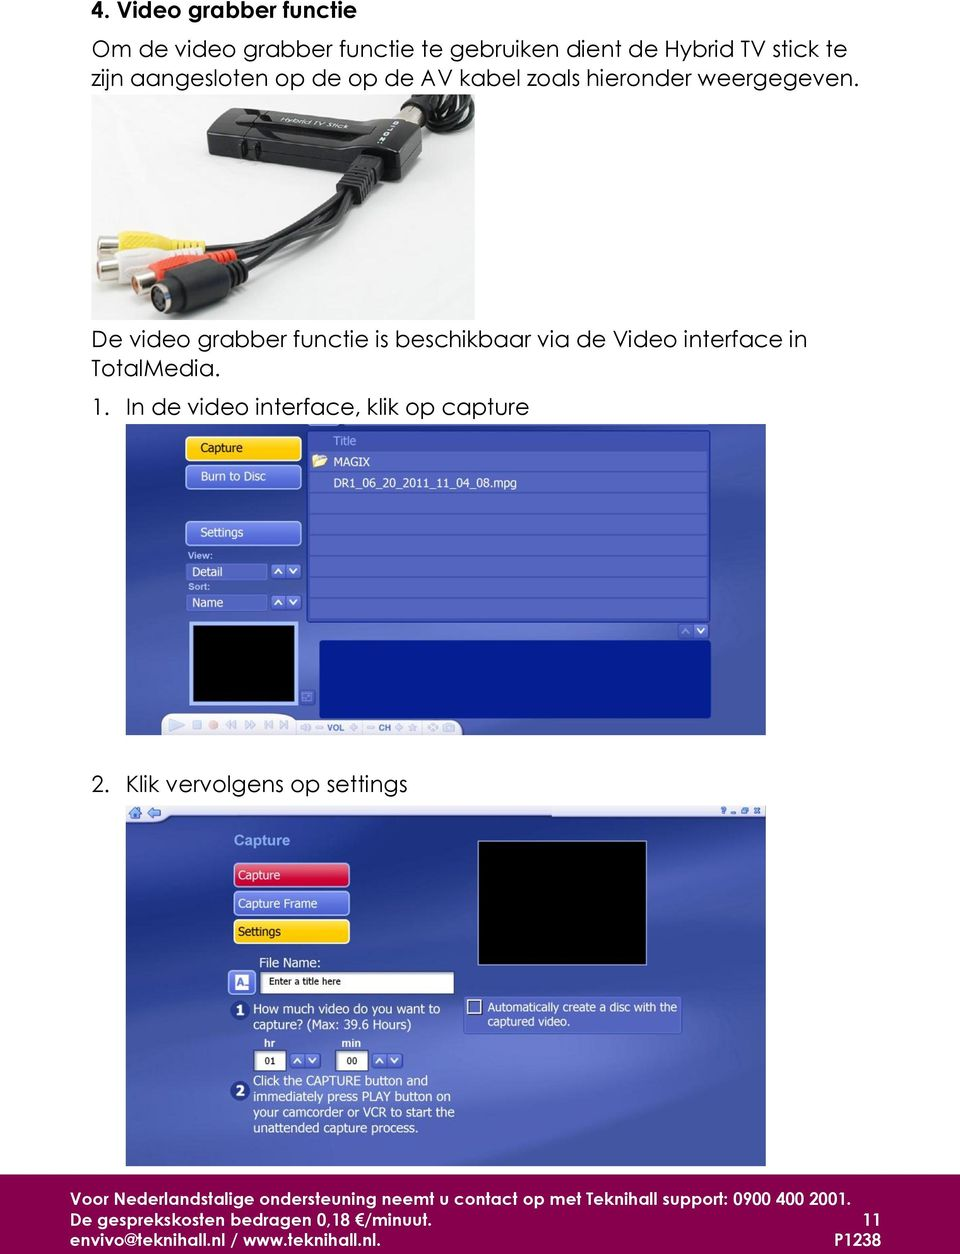 De video grabber functie is beschikbaar via de Video interface in TotalMedia. 1.